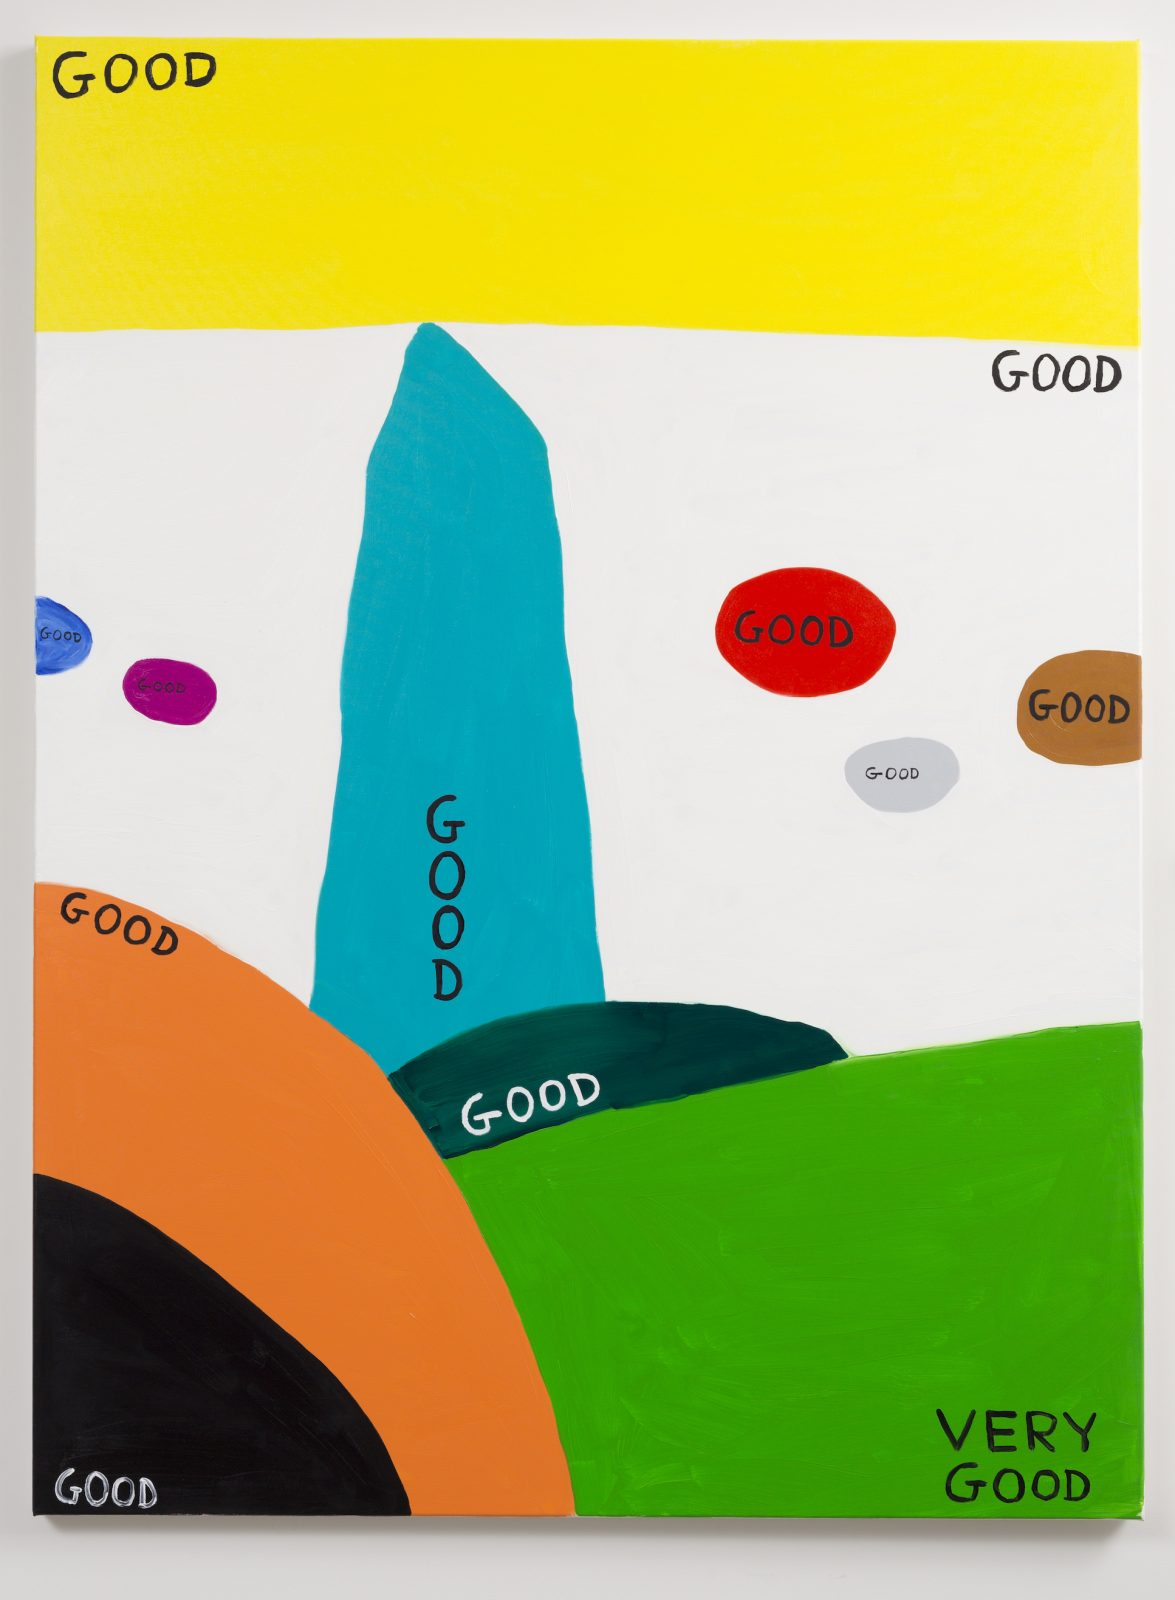 David Shrigley featured artwork